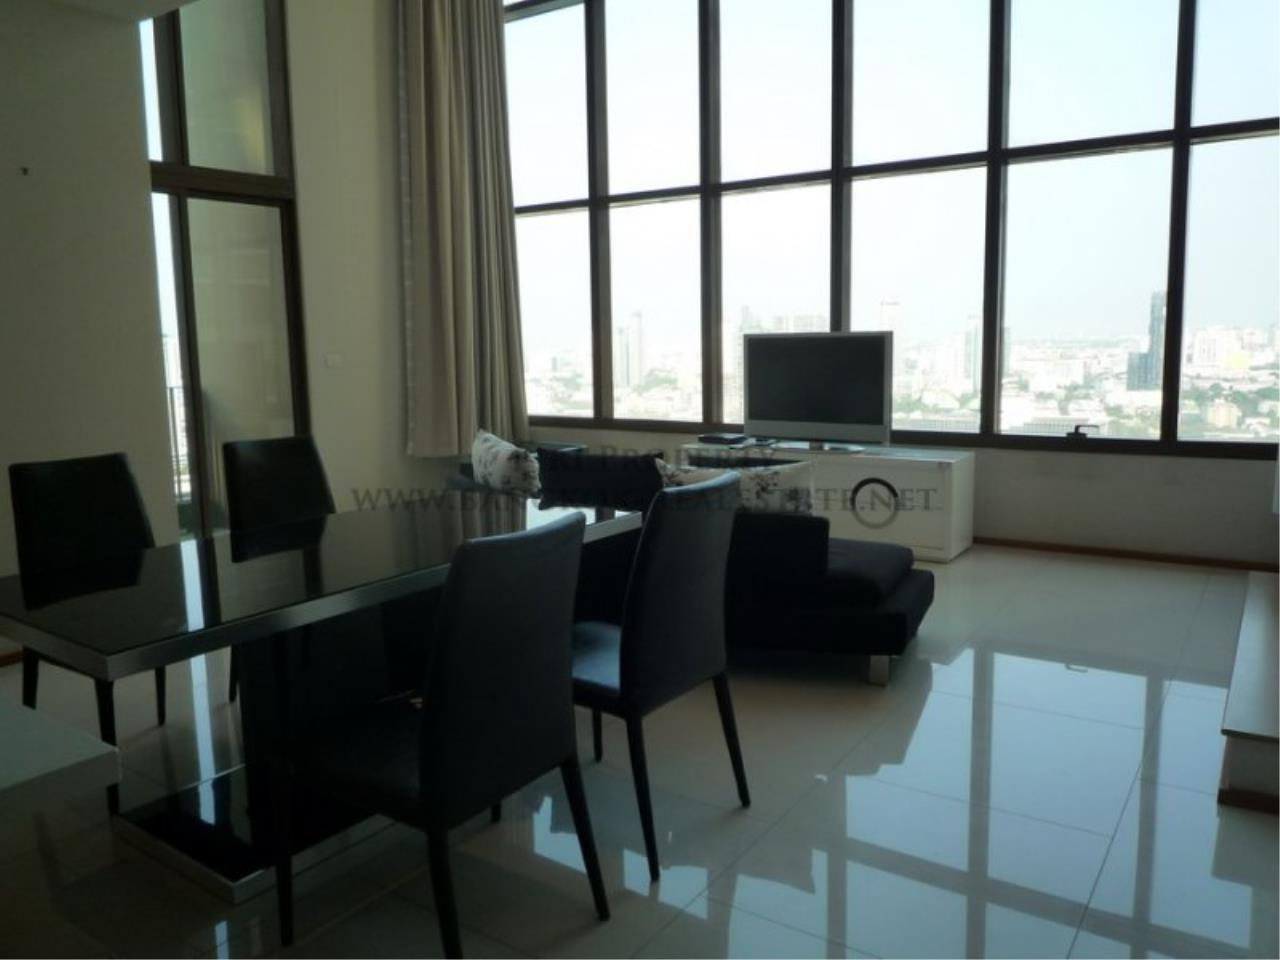 Piri Property Agency's 2 Bedroom Duplex Condo - Emporio Place - High Floor with excellent views 3